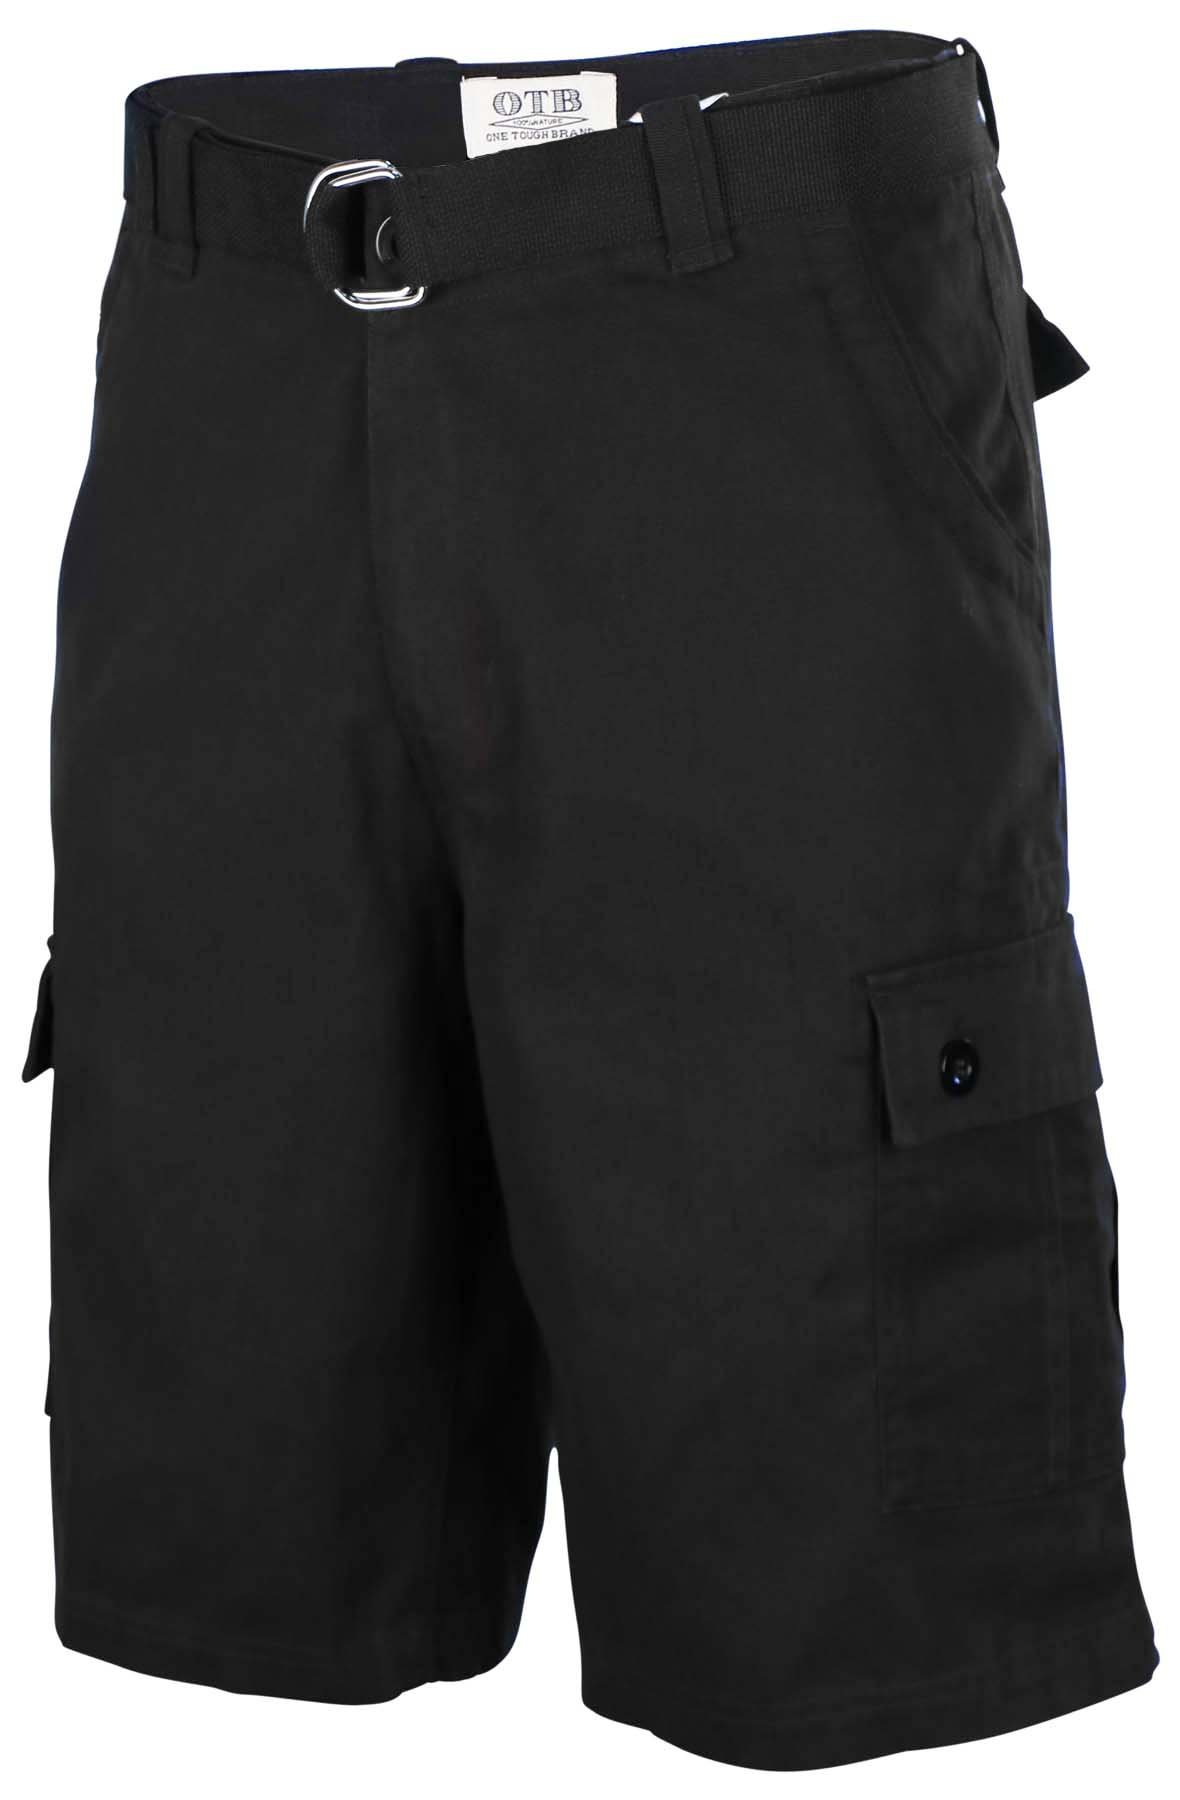 One Tough Brand Men's Cotton Twill Belted Cargo Shorts-Black-36